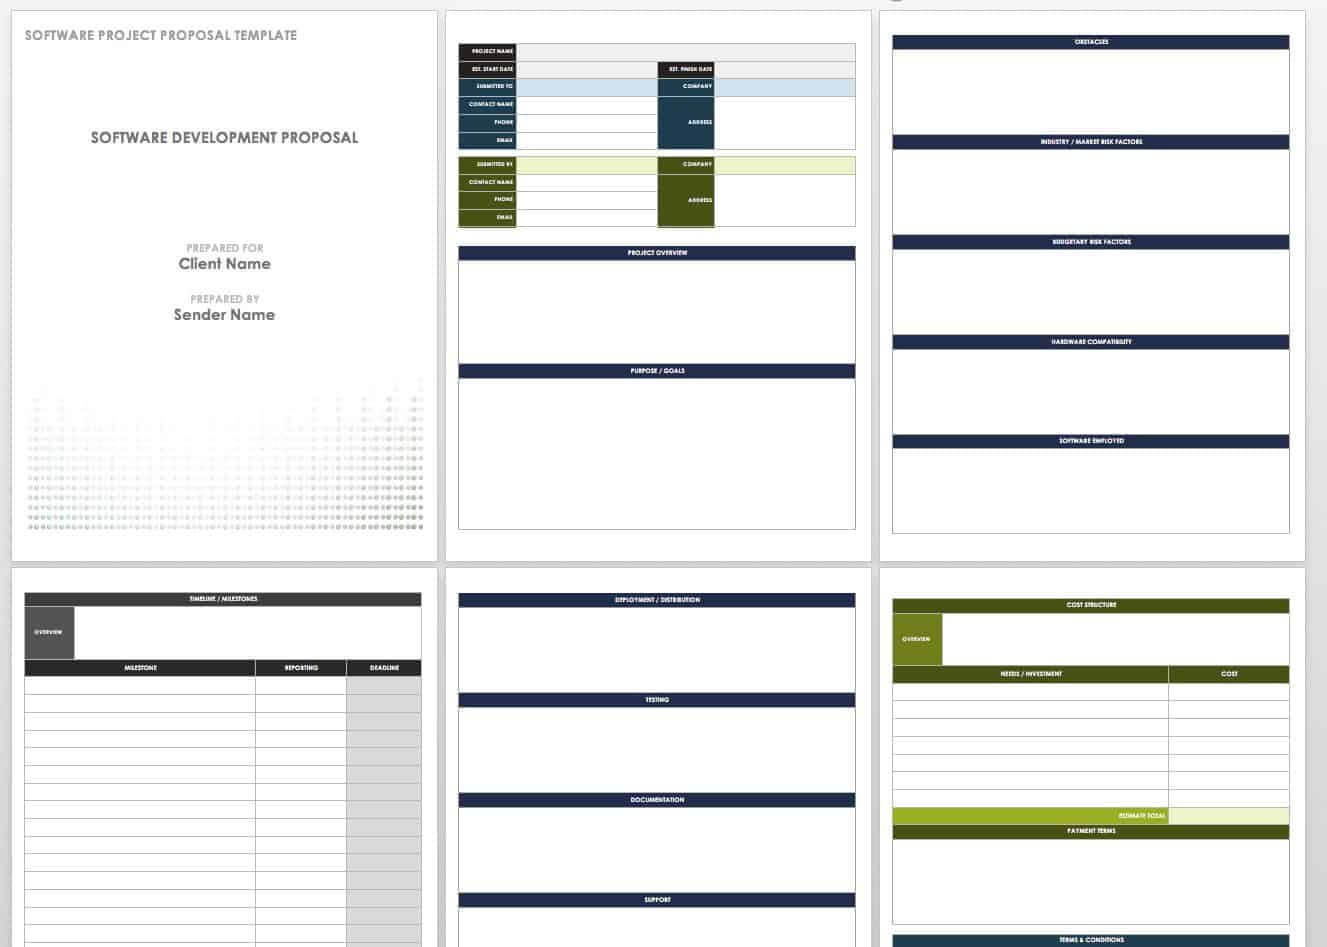 17 Free Project Proposal Templates + Tips   Smartsheet Inside Software Project Proposal Template Word